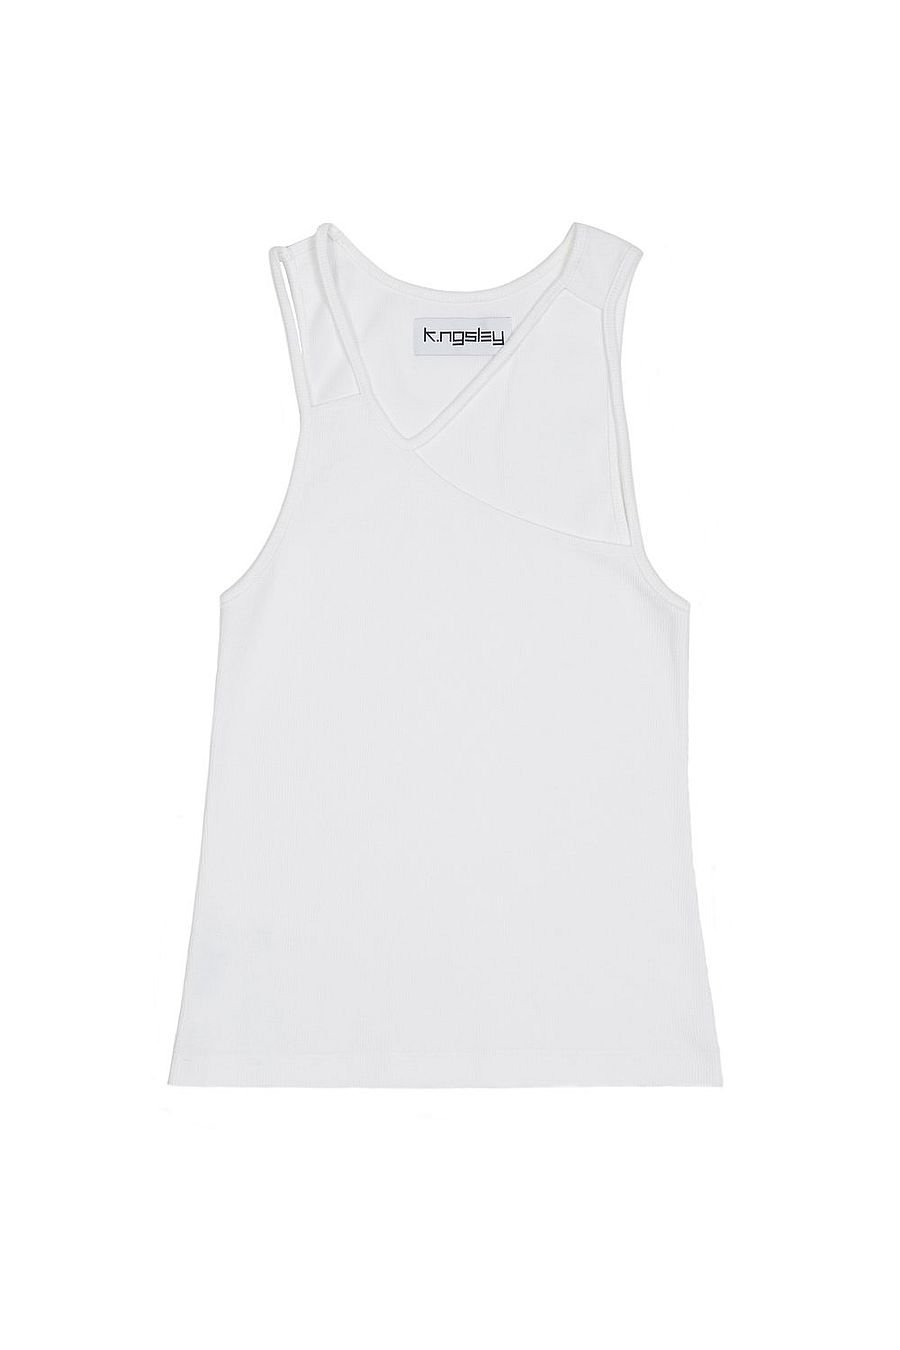 K.ngsley Fist Tank - White